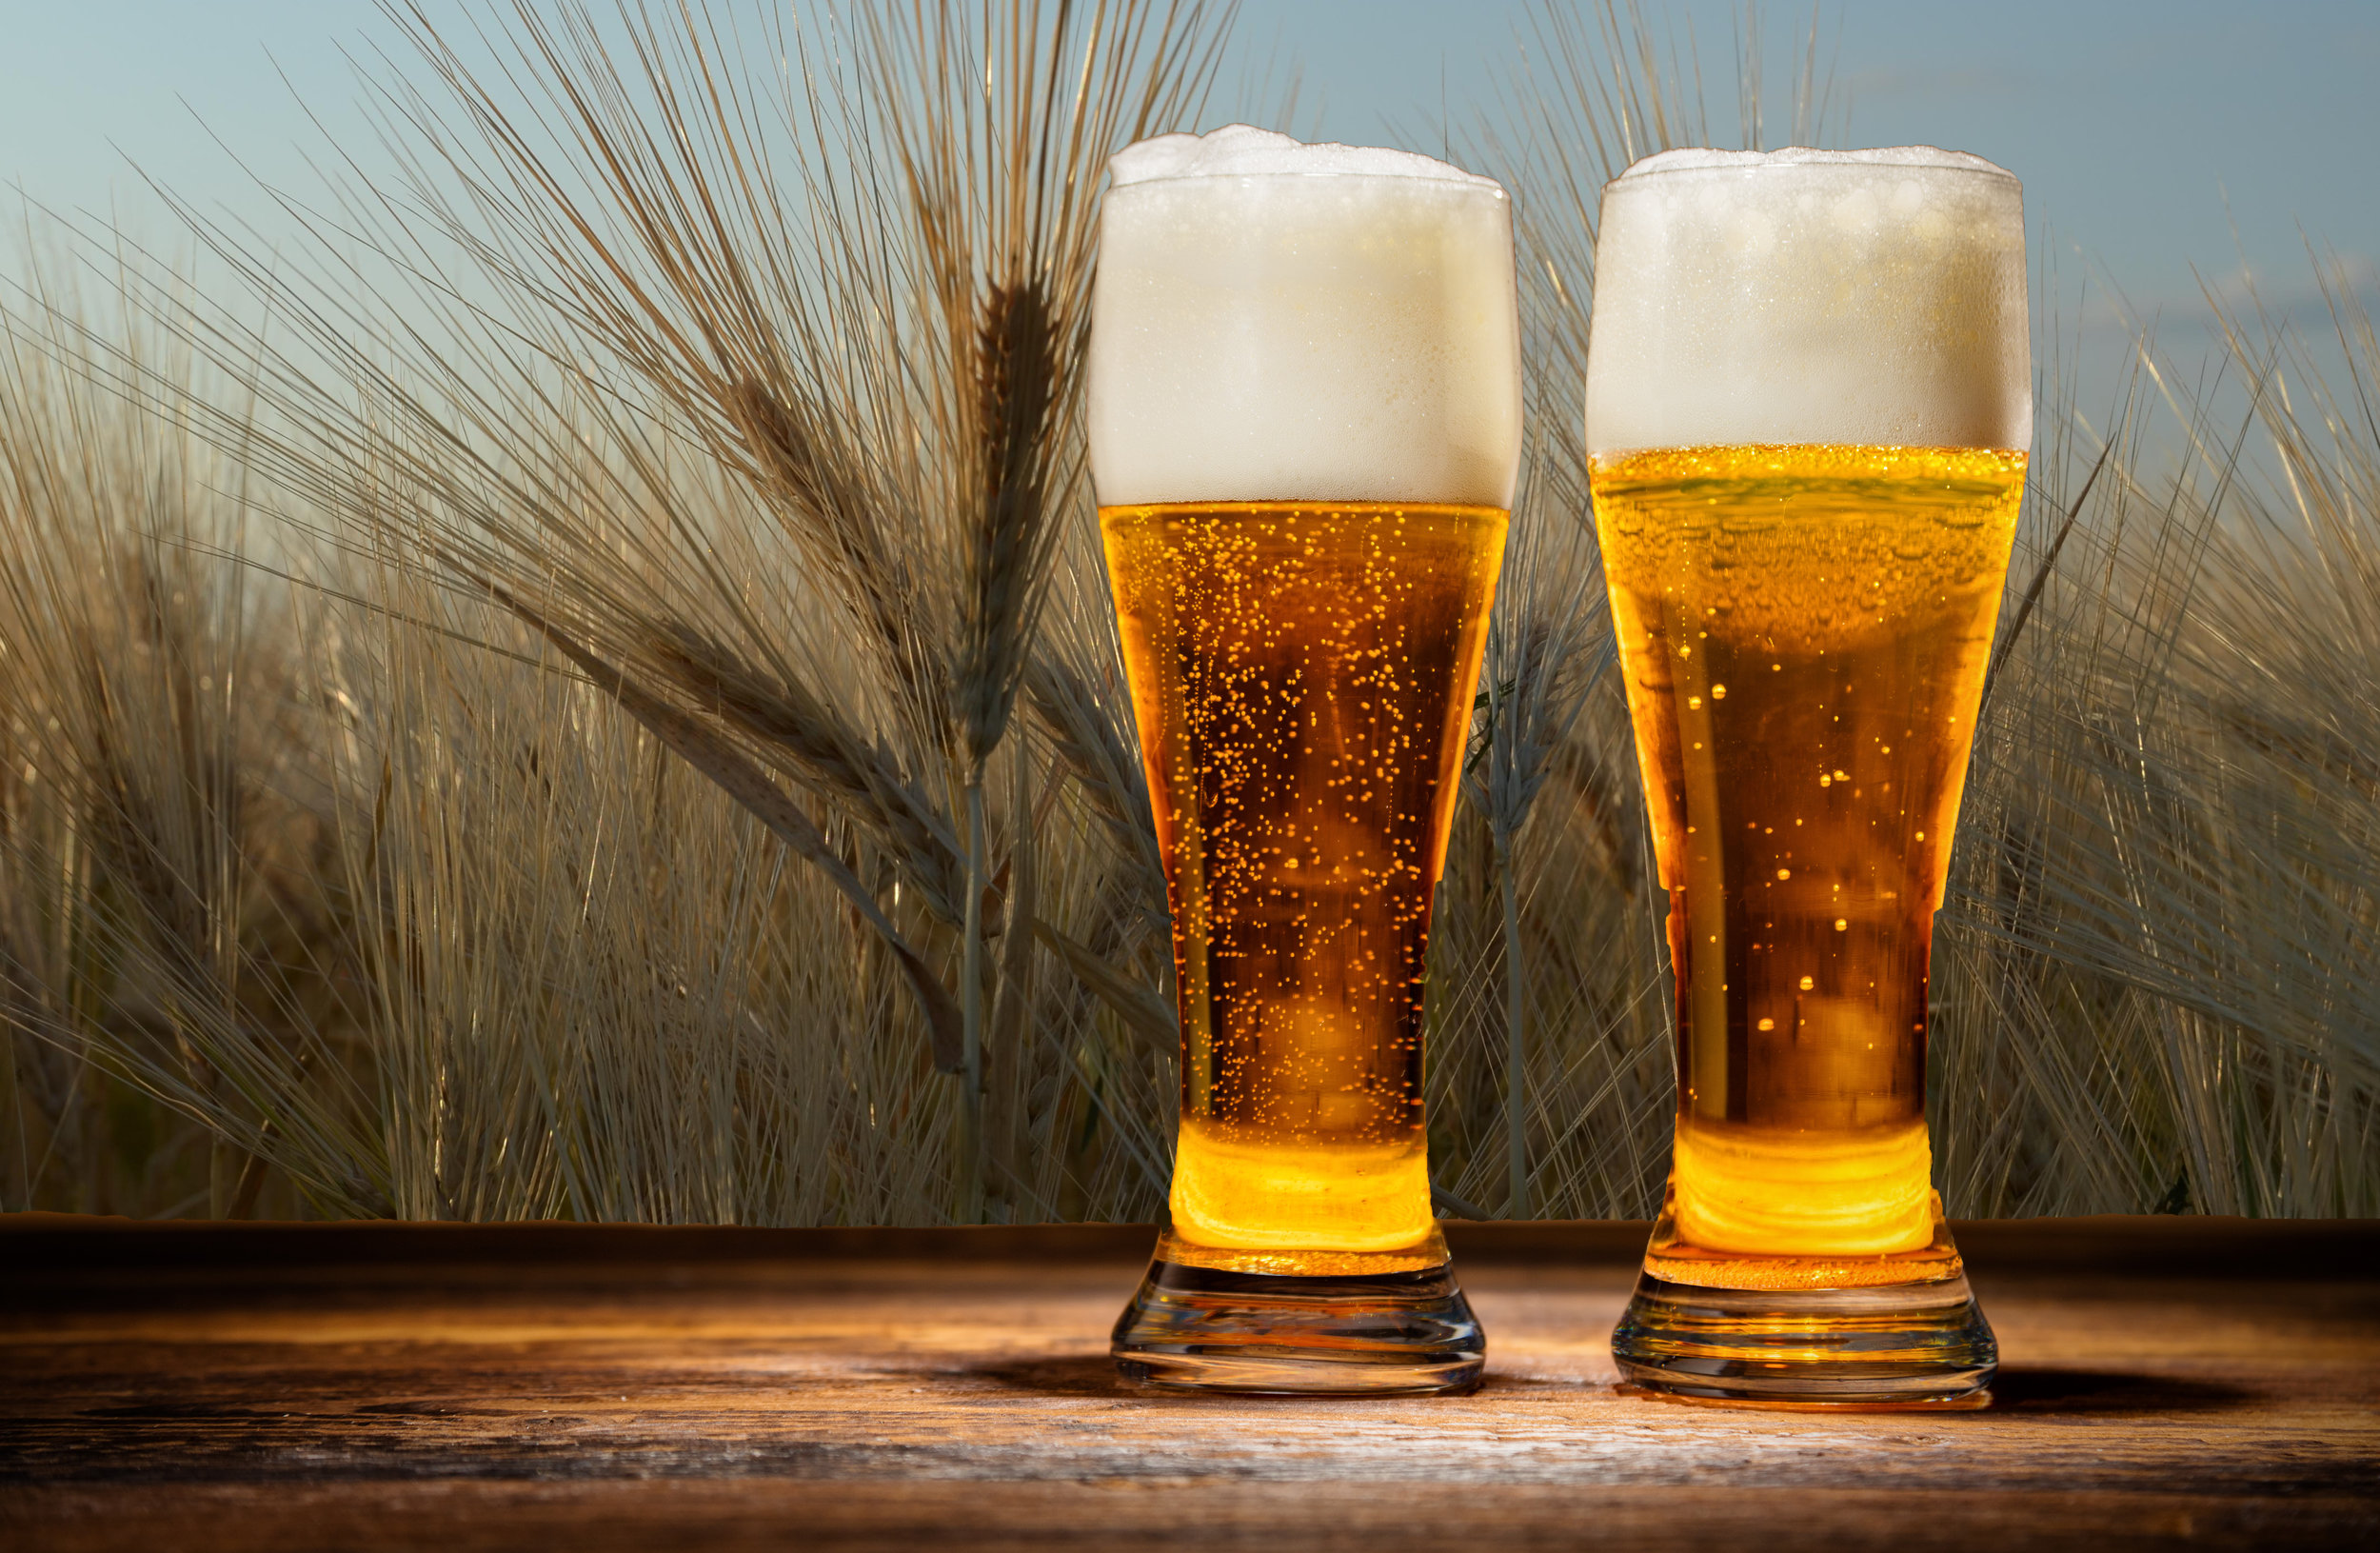 Barley Beer Photo 2.jpg